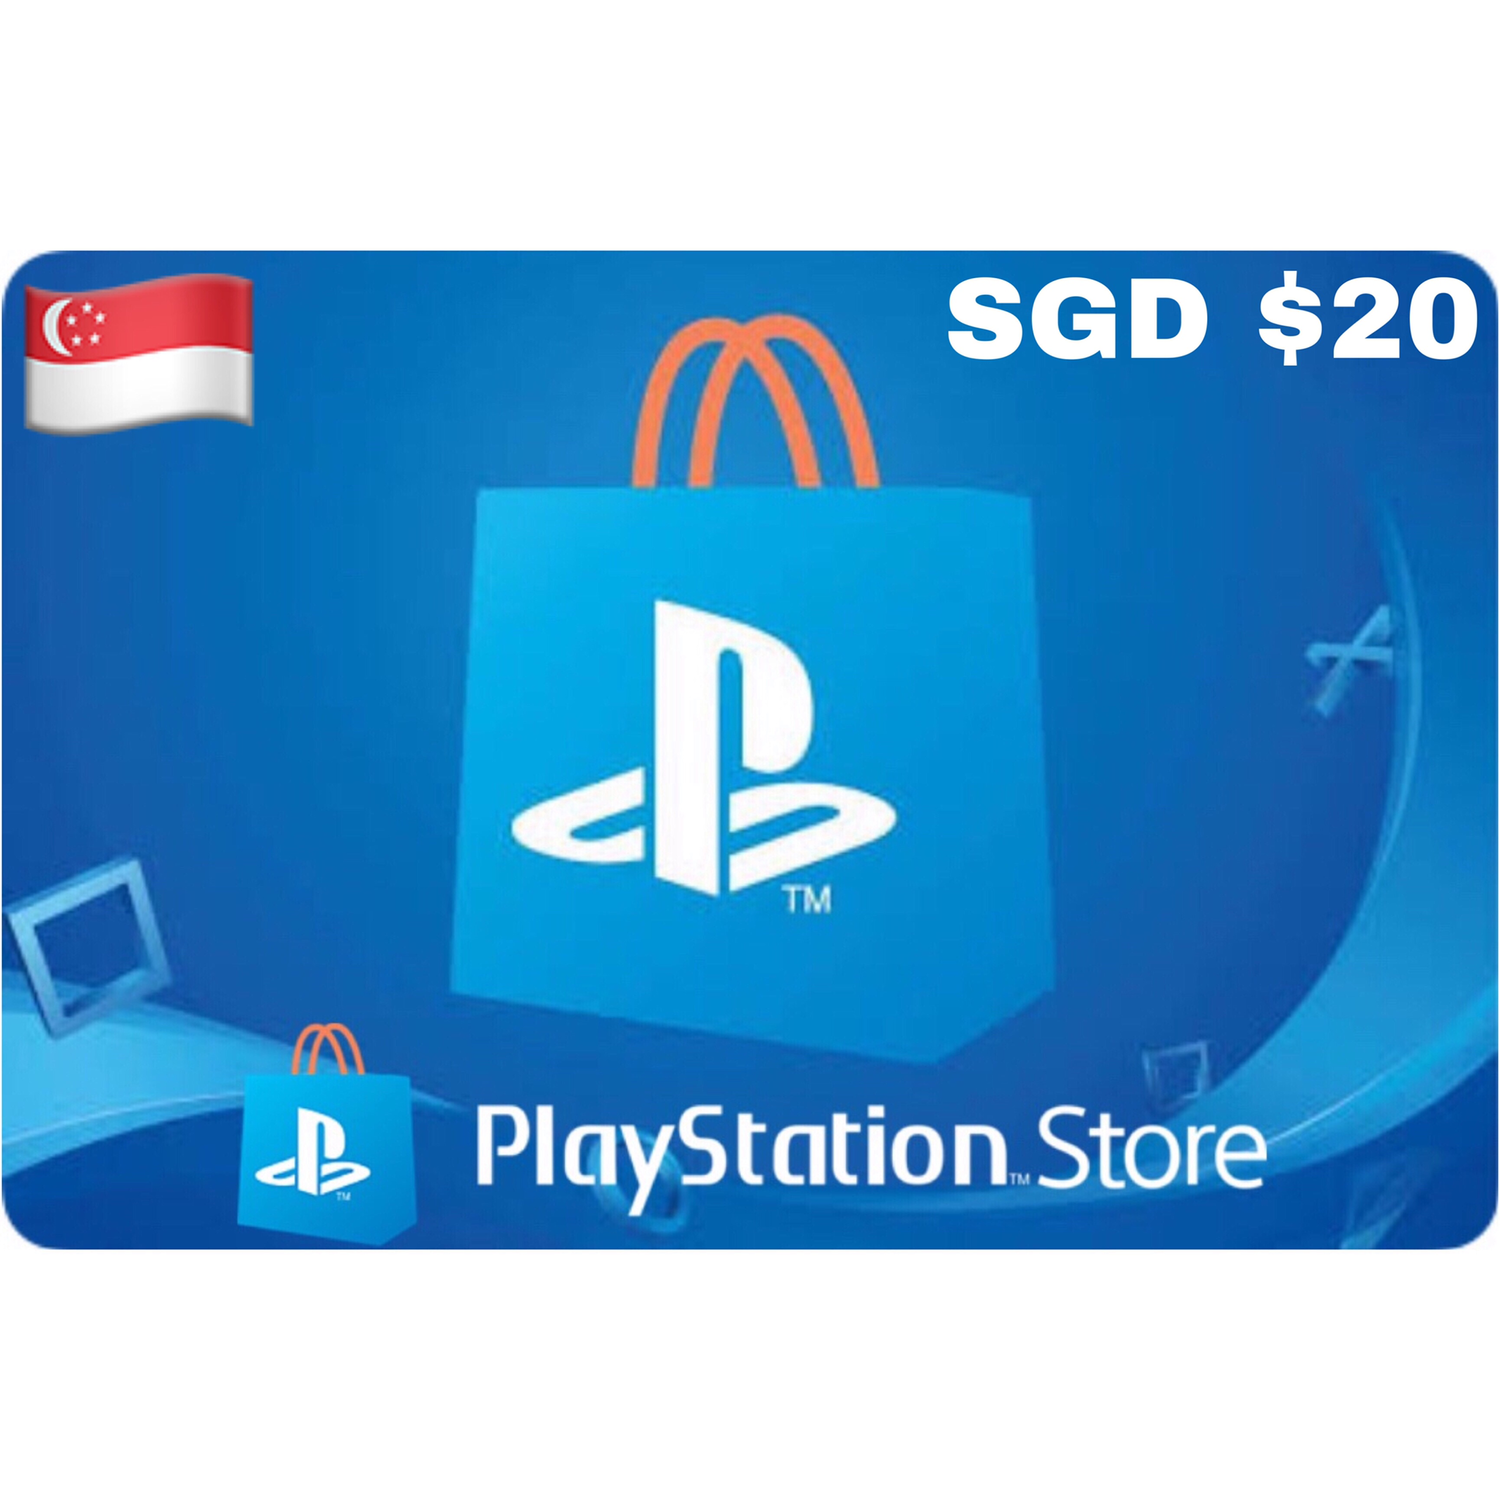 PSN Card - Playstation Network Singapore $20